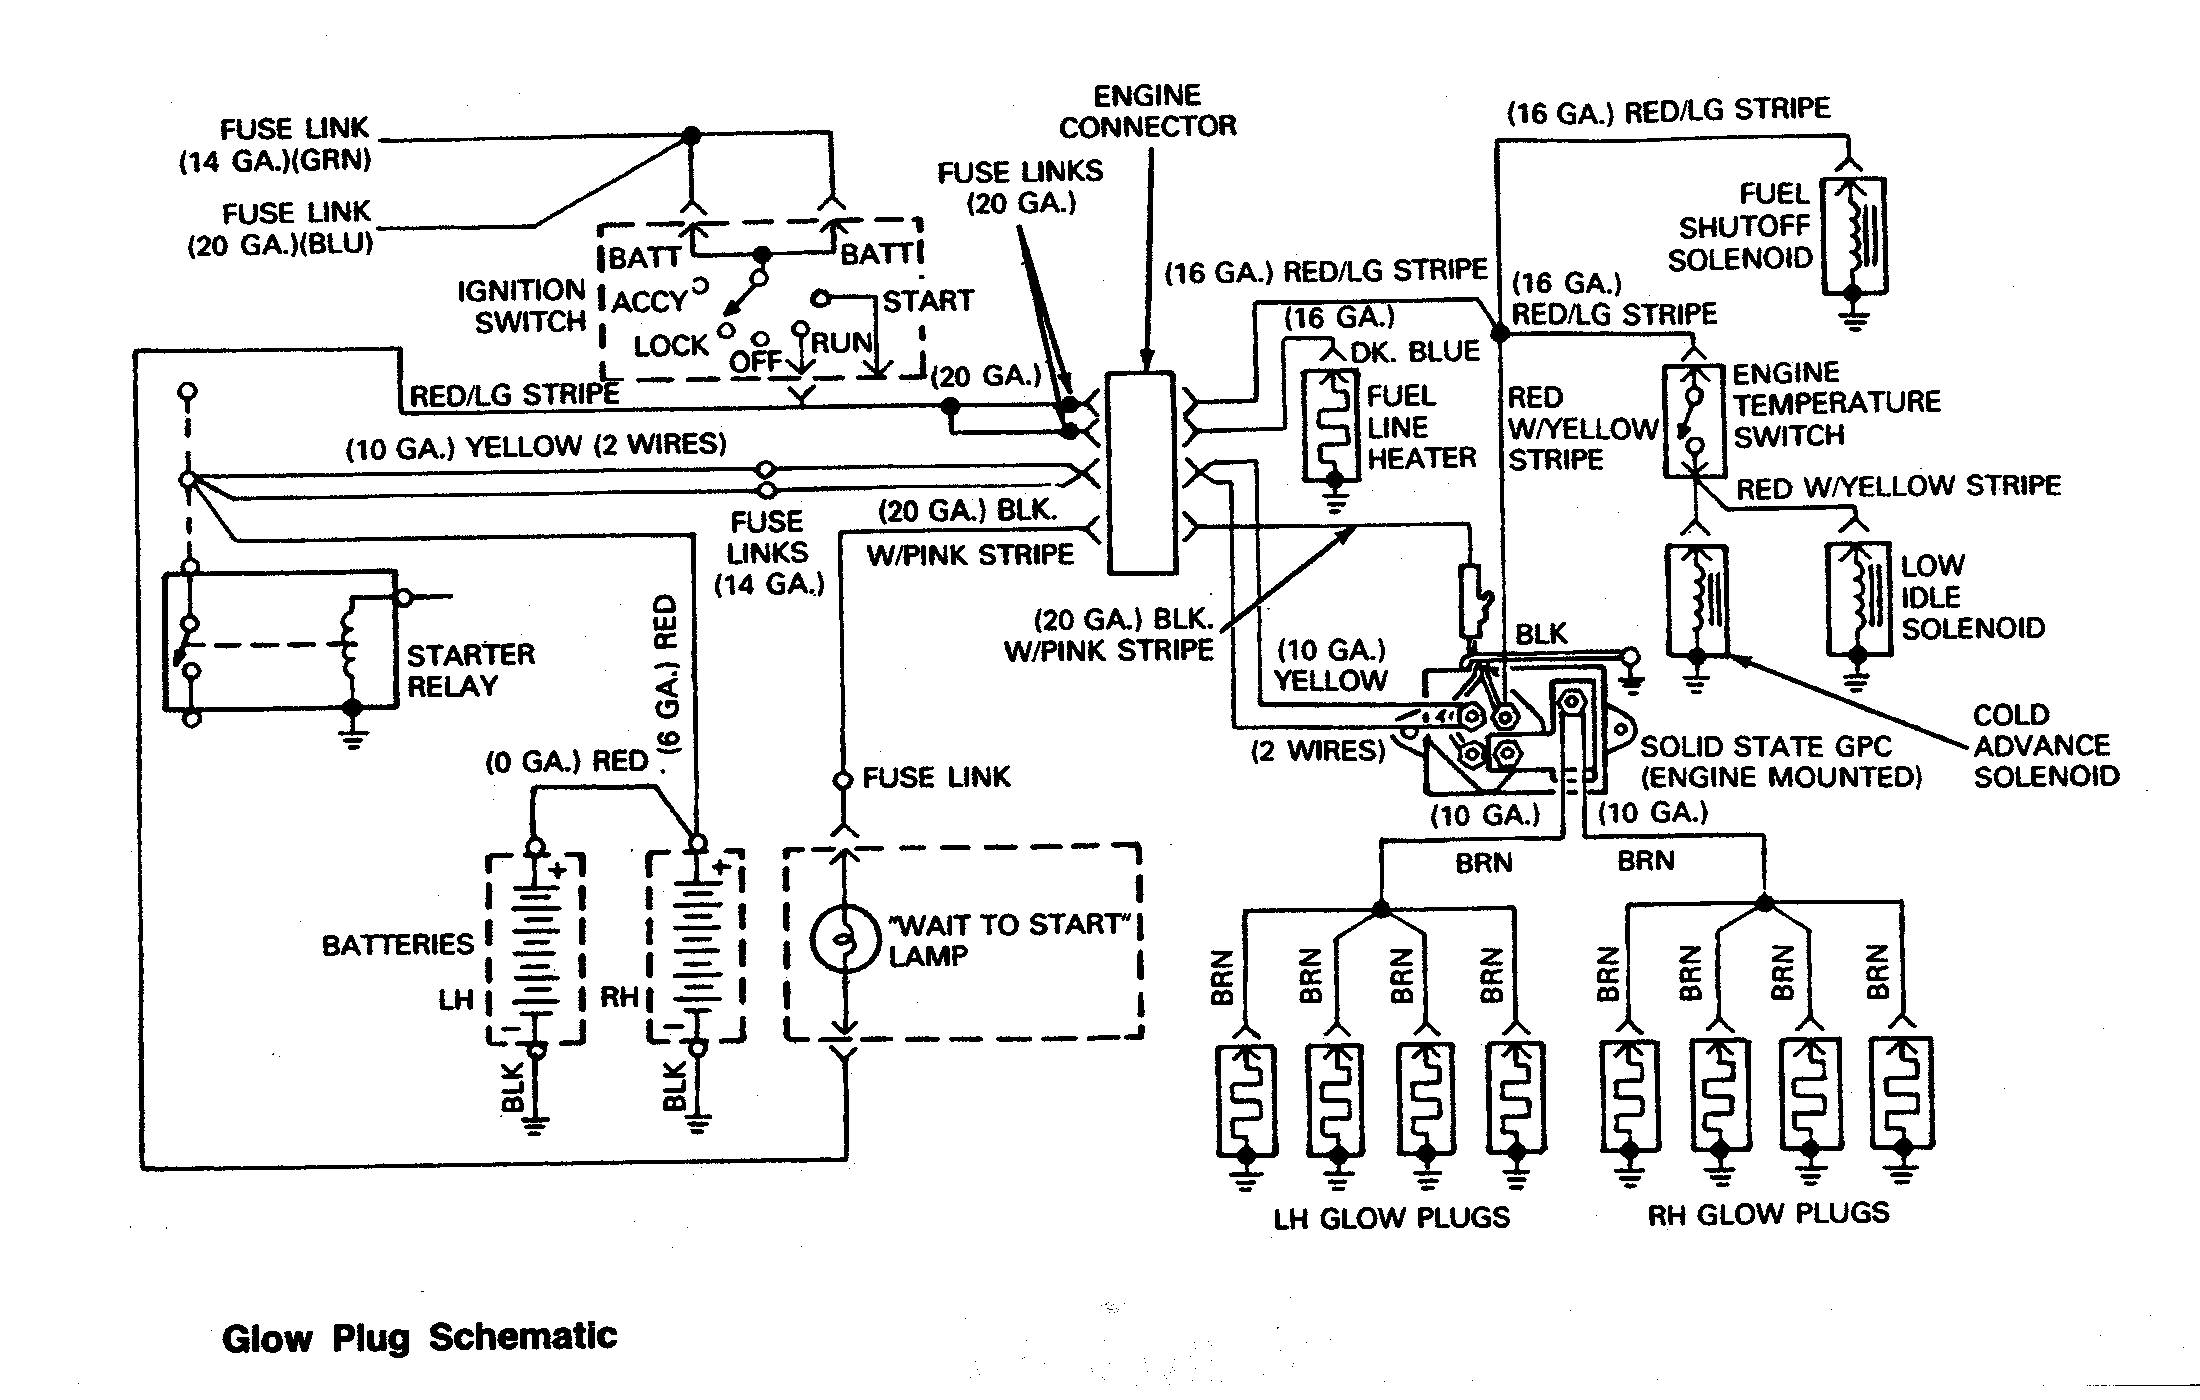 96 7 3 ford f 250 engine diagram  96  get free image about